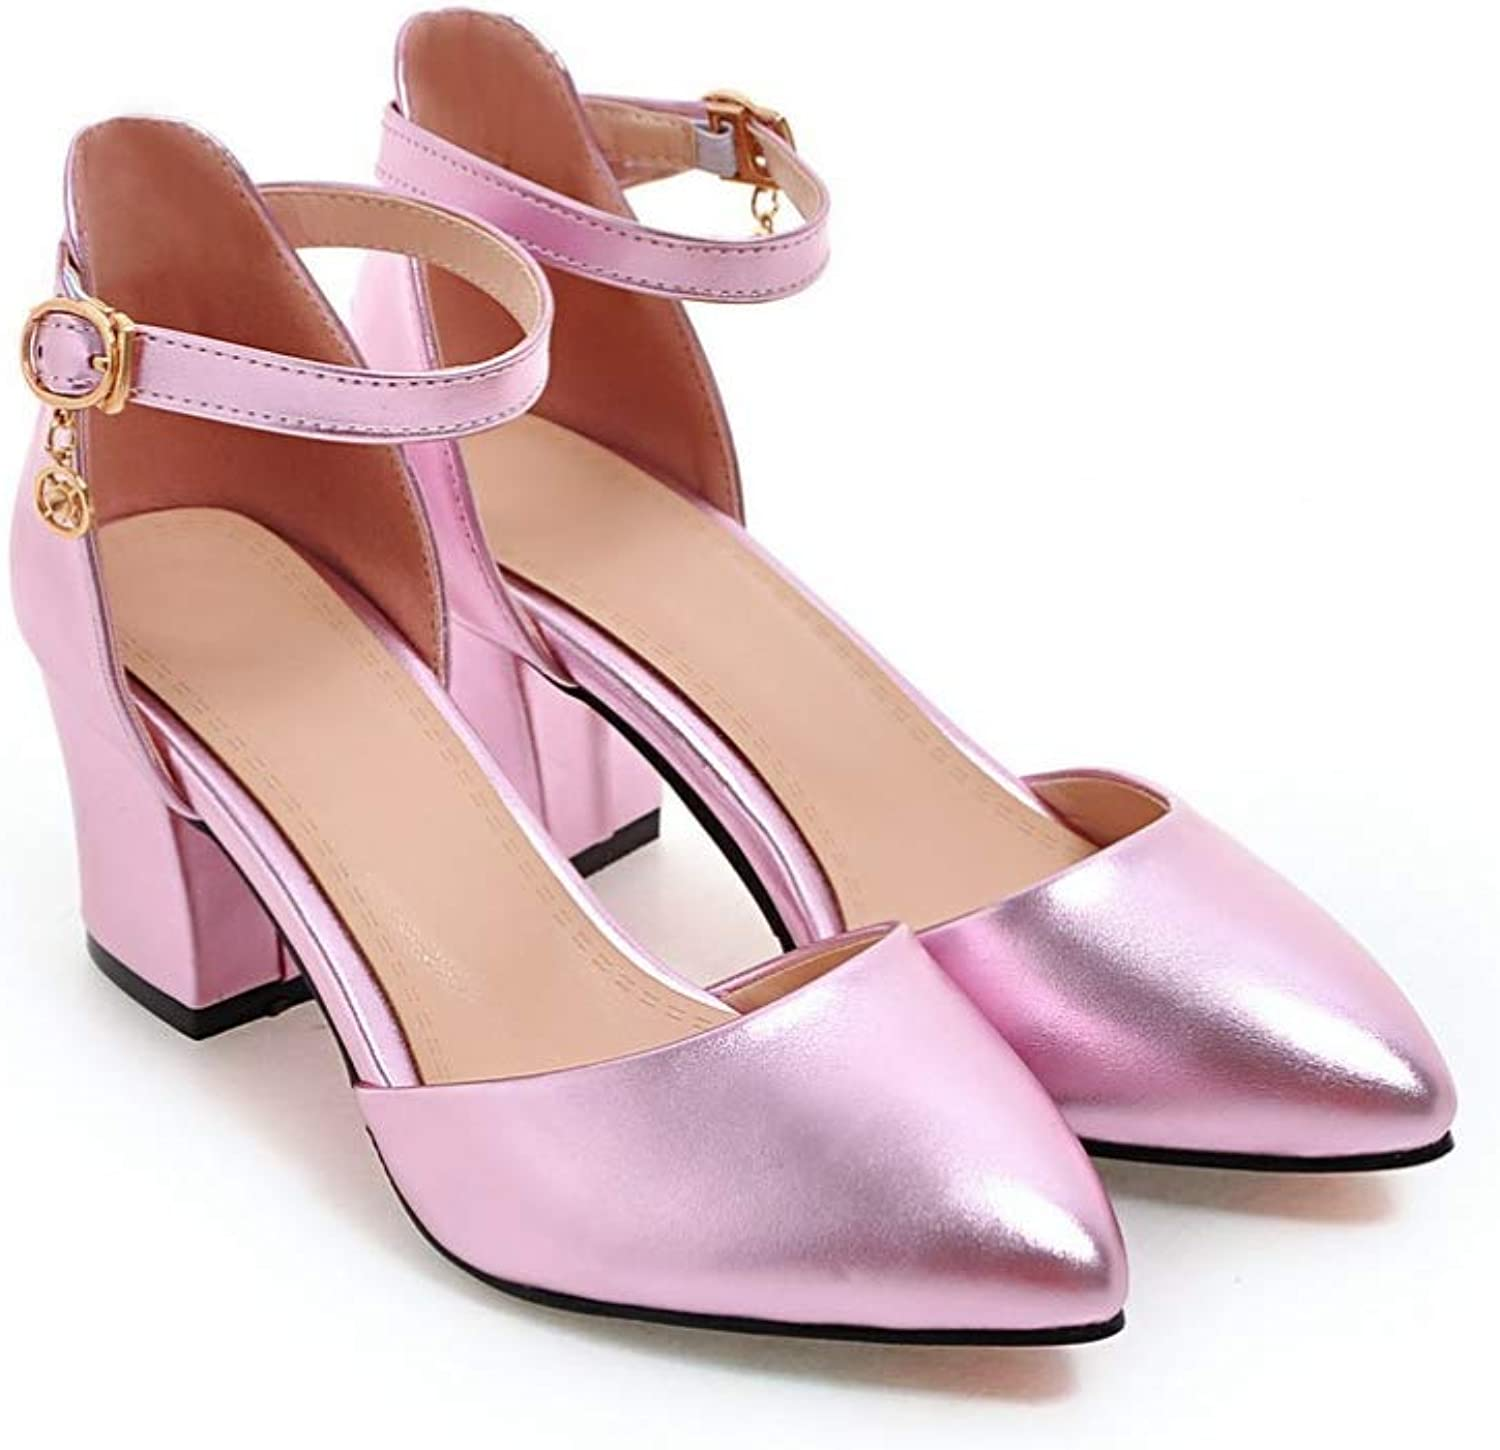 T-JULY Sandals Women Med Square Heels Pointed Toe shoes Lady Wedding Party shoes with Buckle Ankle Strap